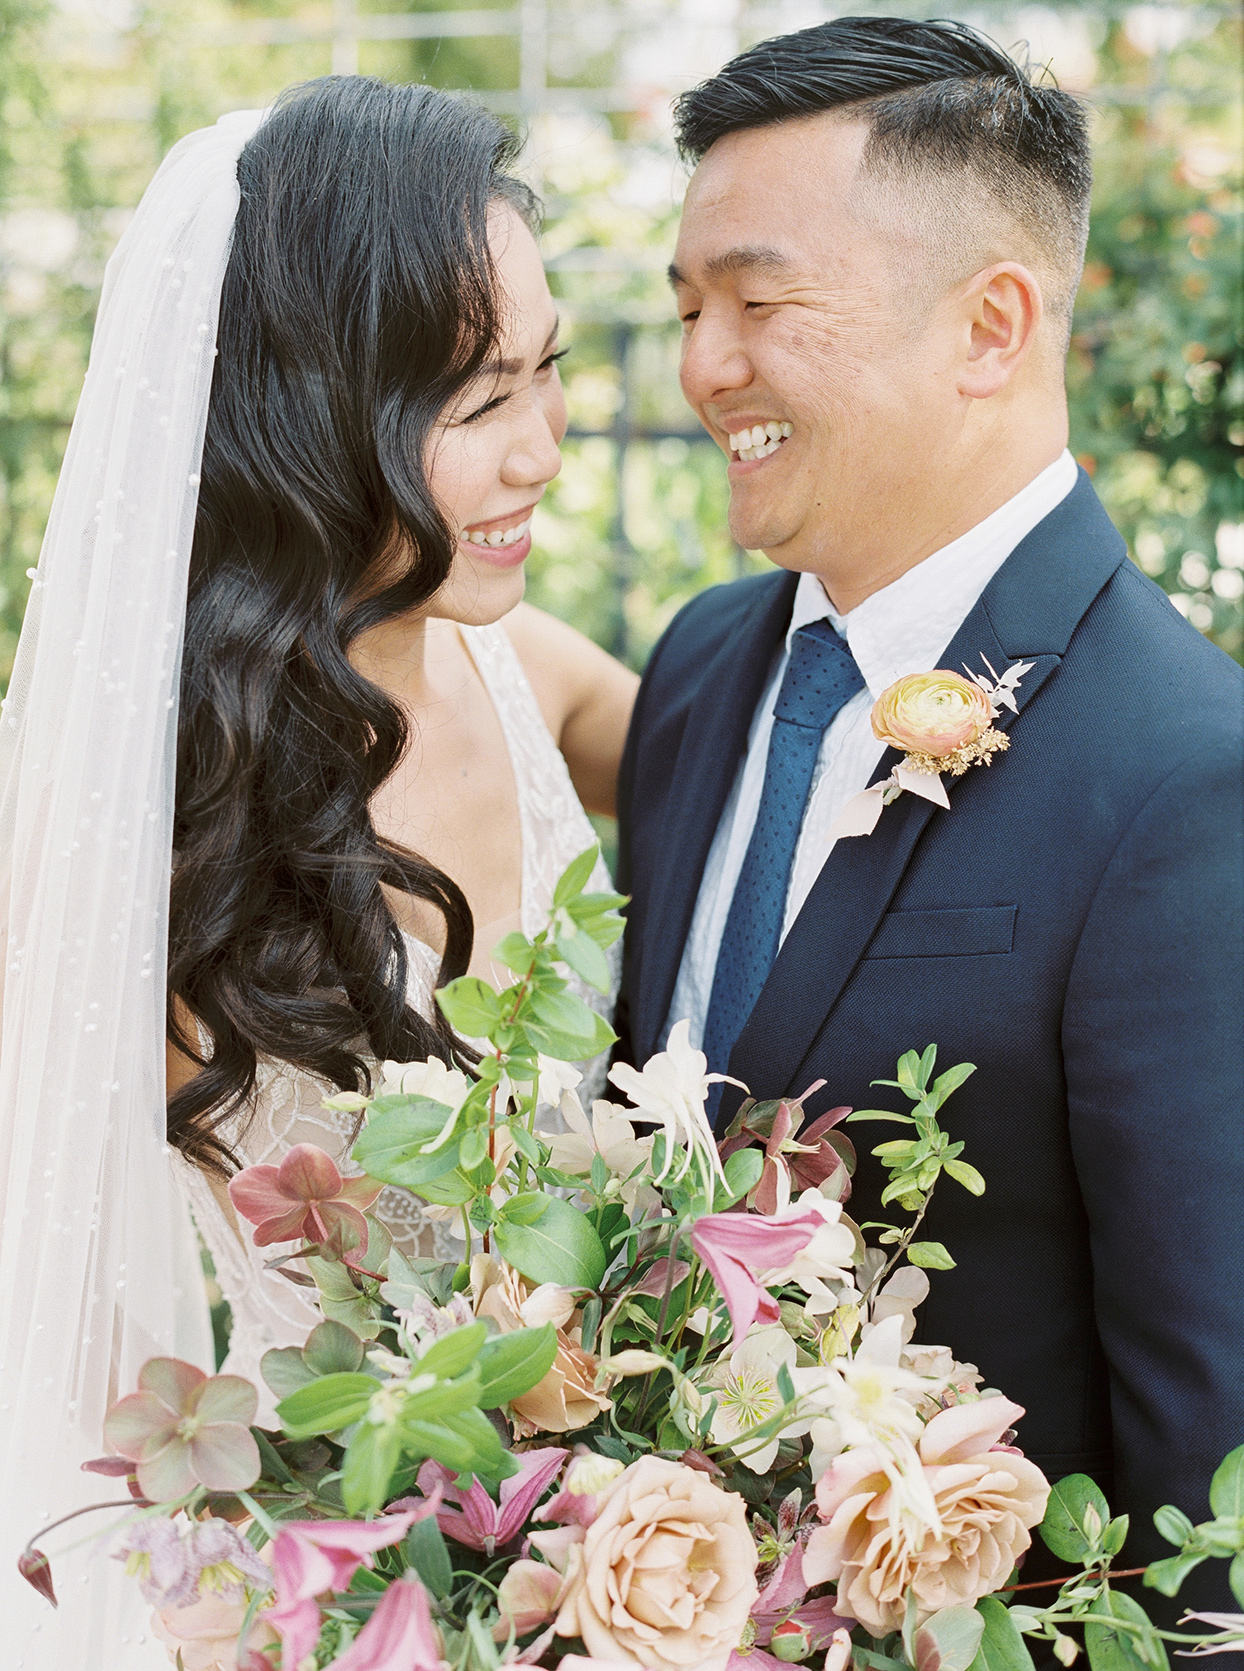 thuy kahn wedding couple smiling with flowers